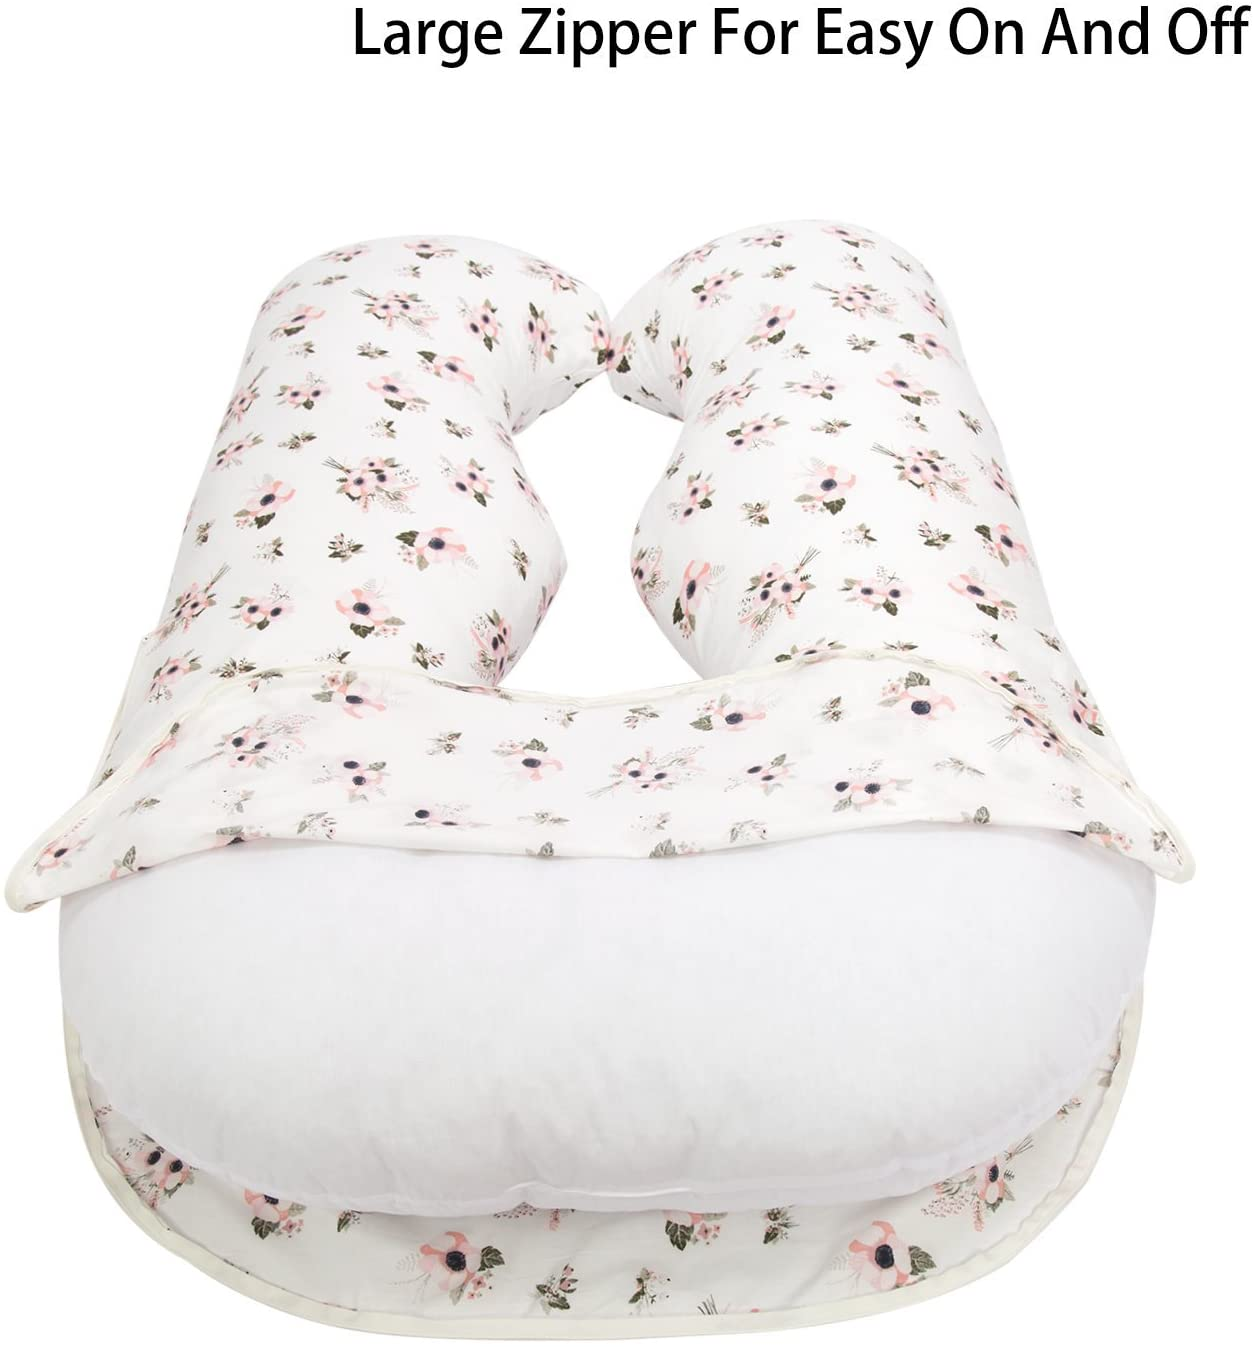 "Large Zipper Personalized Pregnancy Pillowcase, 100% Egyptian Cotton Fit 55"" x 31"" U Shaped Pillow"